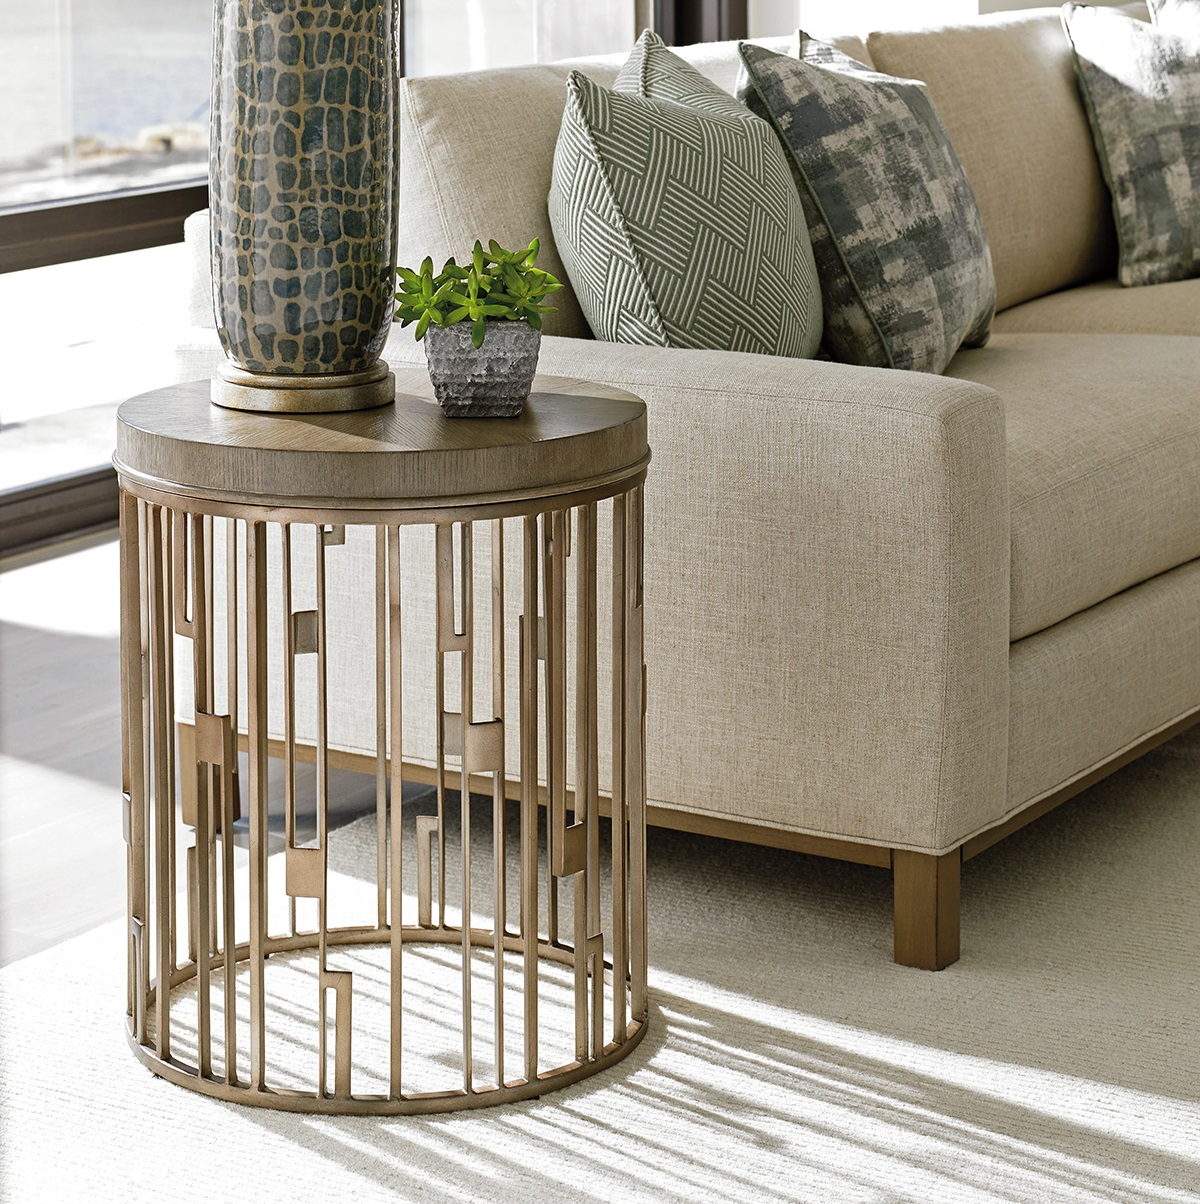 small table tables end side gray accent limited production design stock art metal elm topped drum taupe burnished silver leaf base dia inches partner coffee harvest plans living